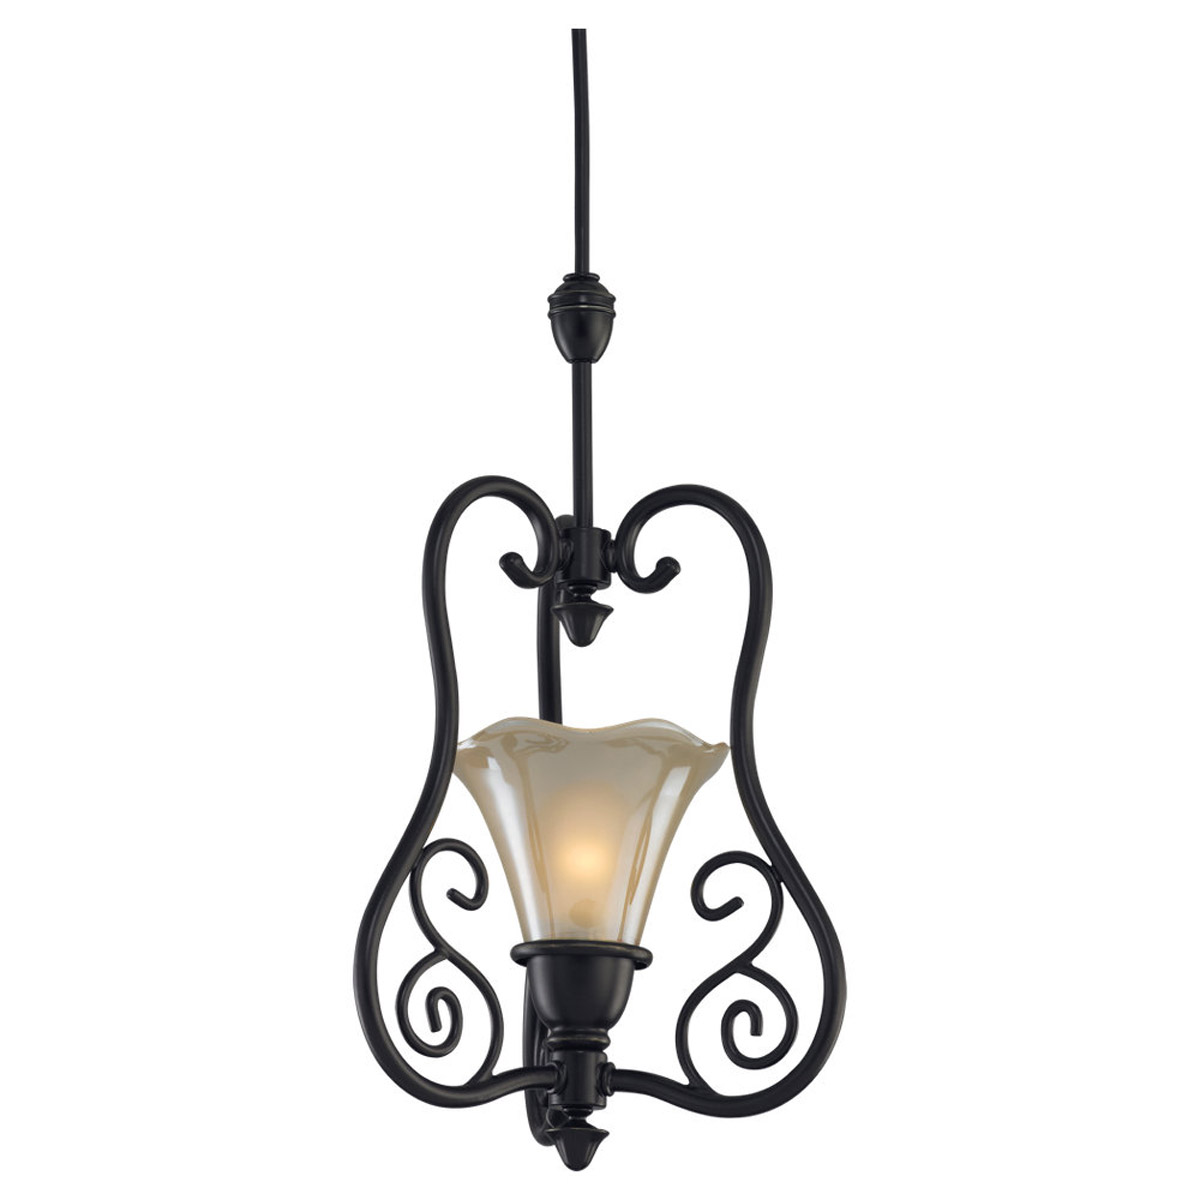 Sea Gull Lighting Trudy 1 + 1 Light Complete Pendant Assembly in Antique Bronze 94565-71 photo